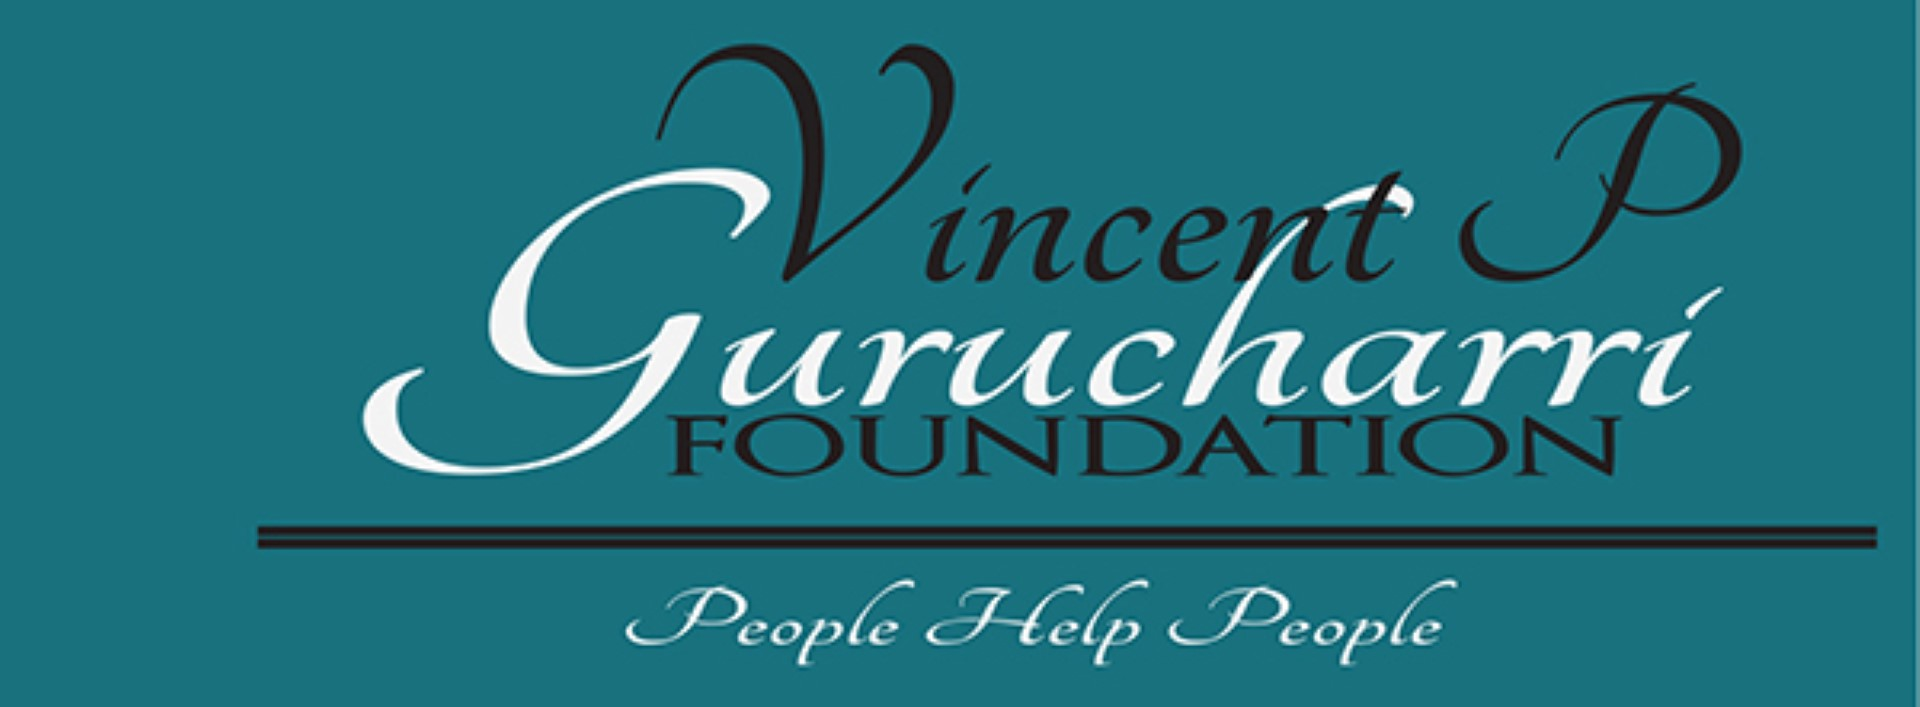 Vincent P. Gurucharri MD Foundation header image